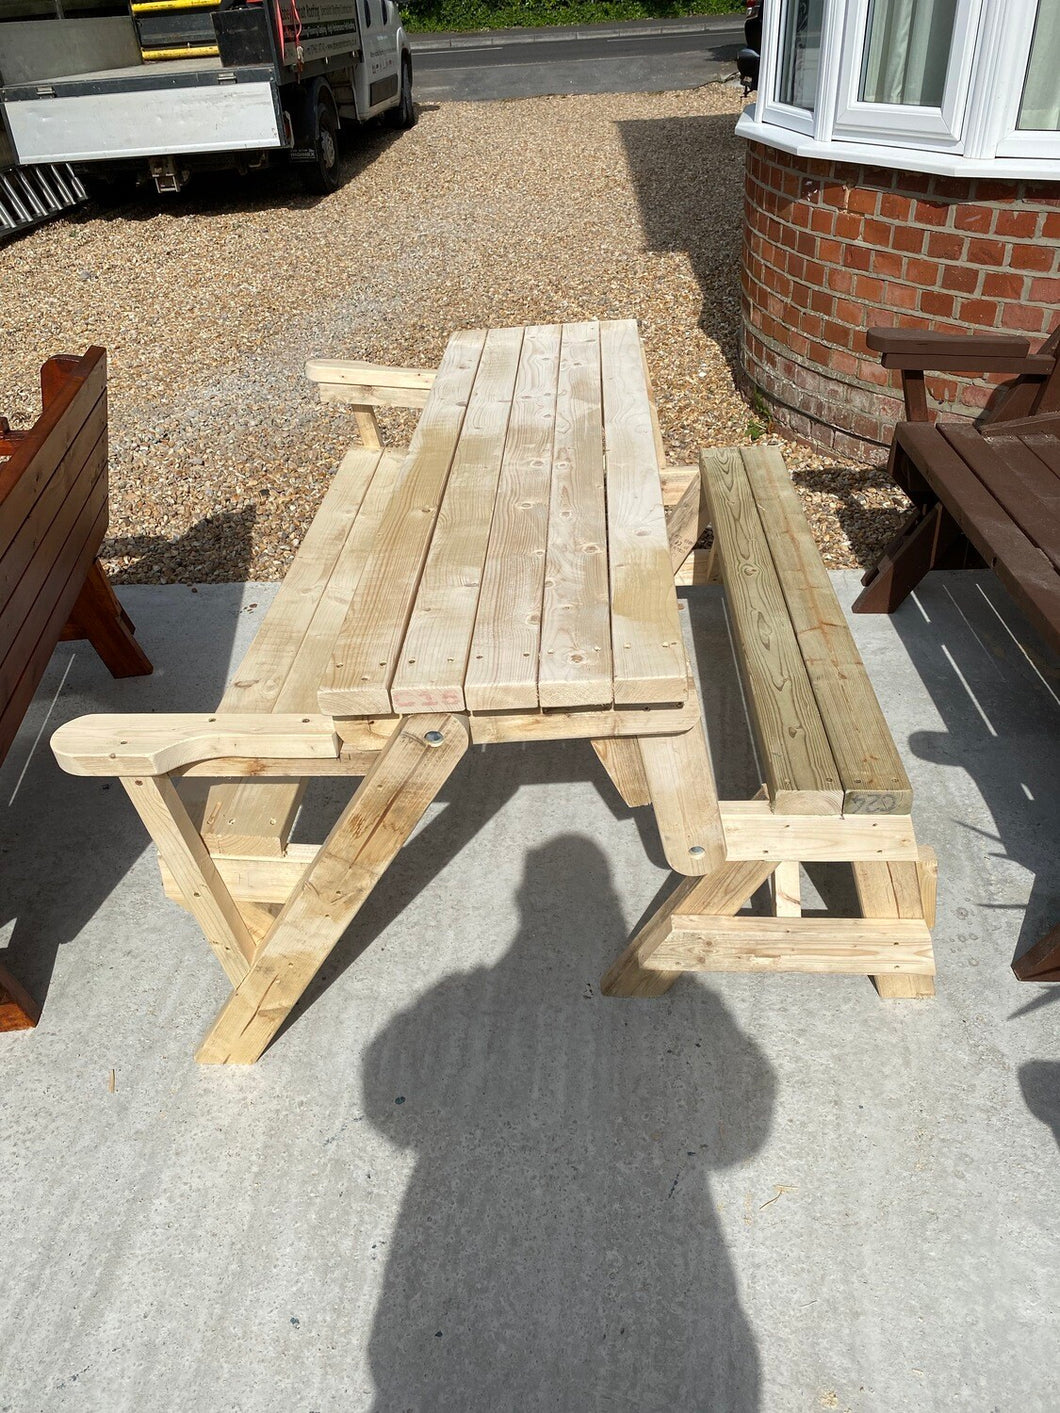 Transforming Bench/Picnic Table